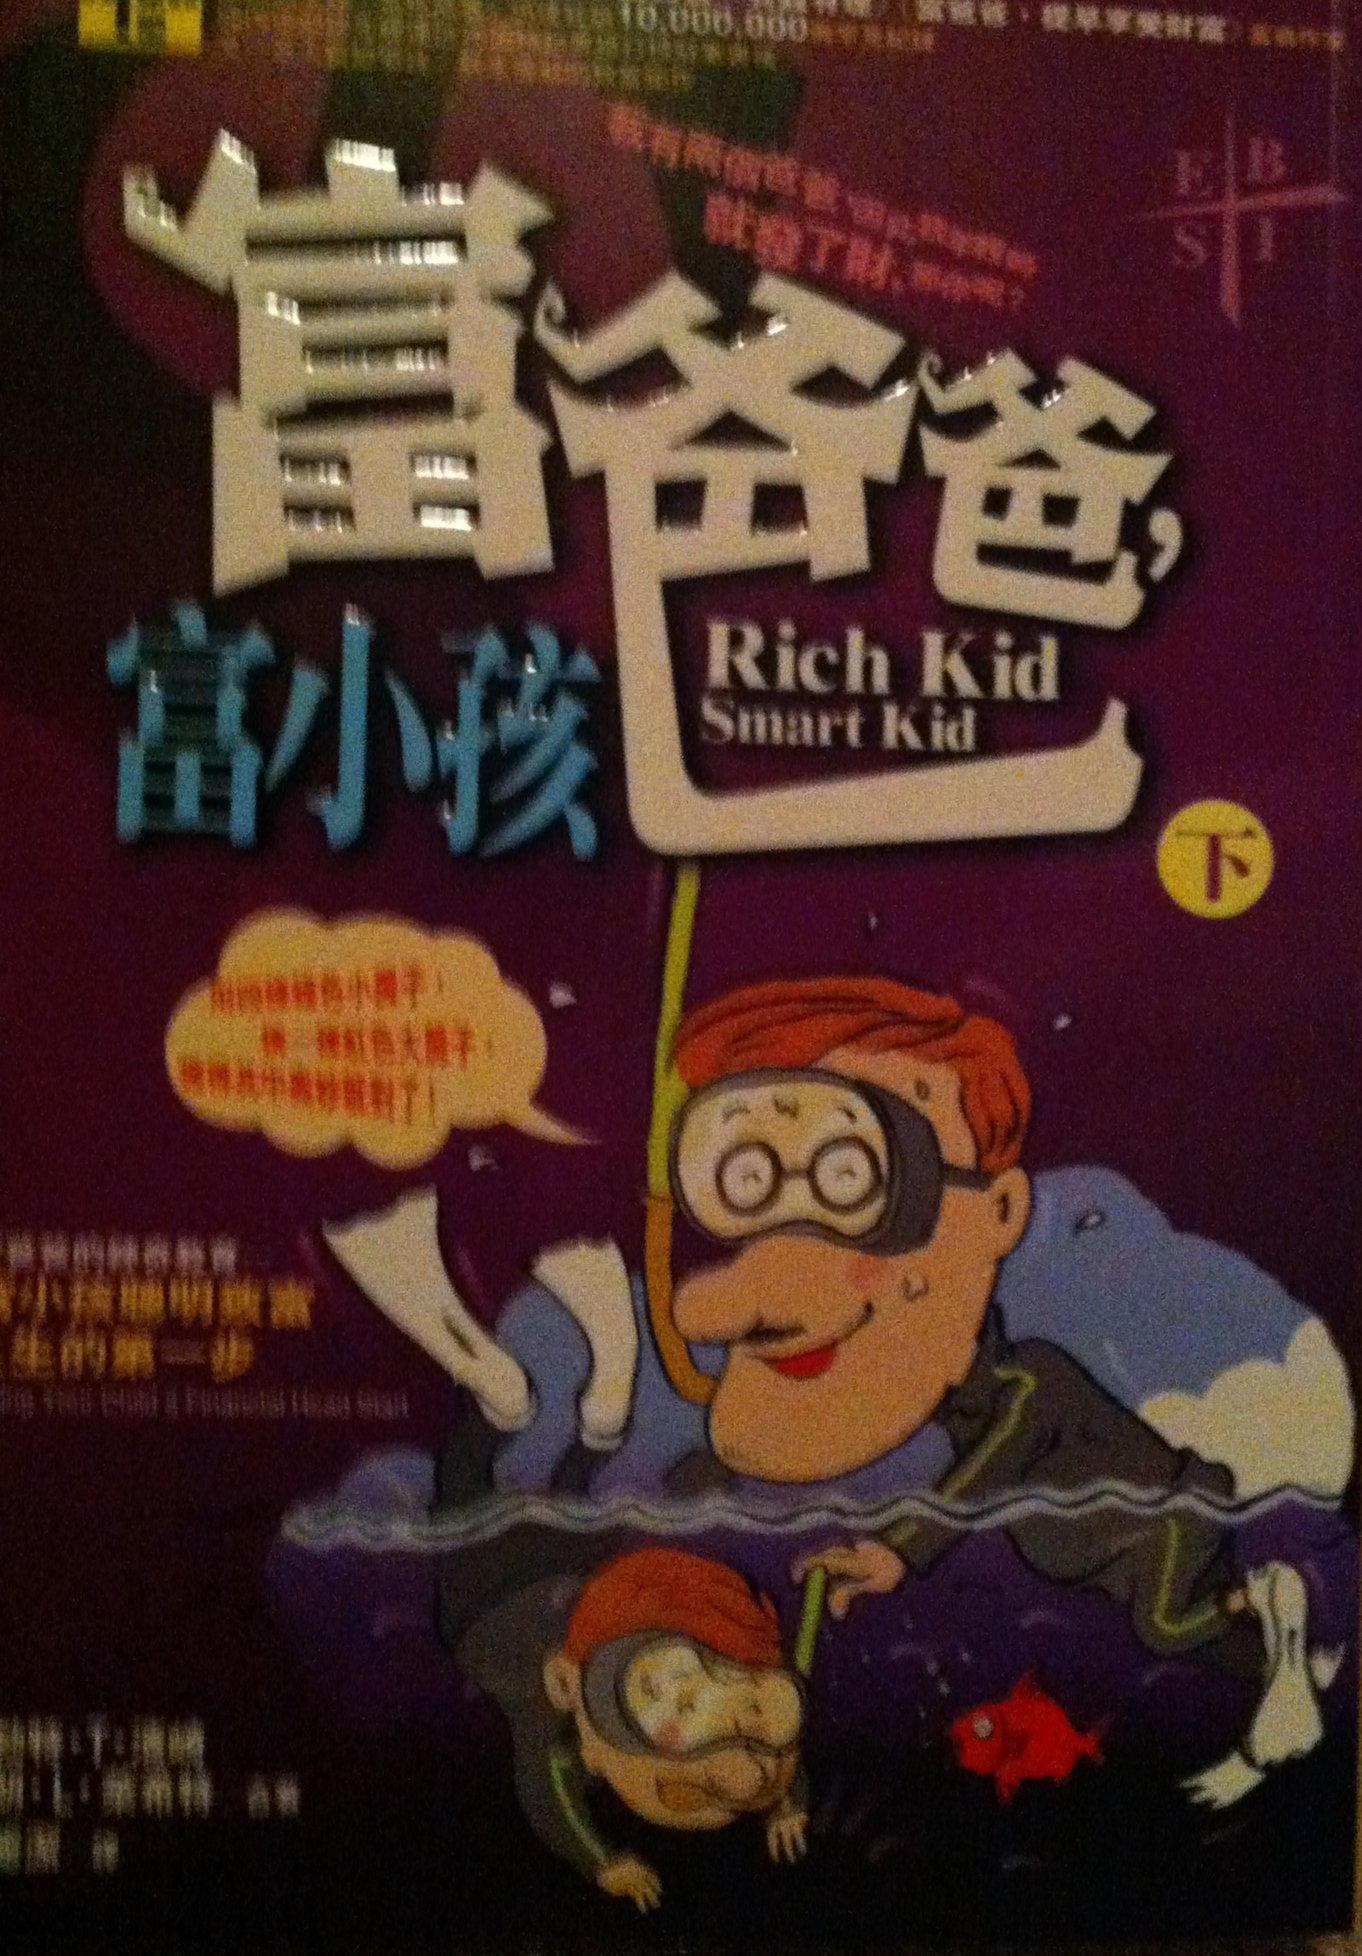 Rich Dad's Rich Kid, Smart Kid: Giving Your Children a Financial Headstart, Vol. 2 ('Fu ba ba, fu xiao hai-2', in traditional Chinese, NOT in English) PDF